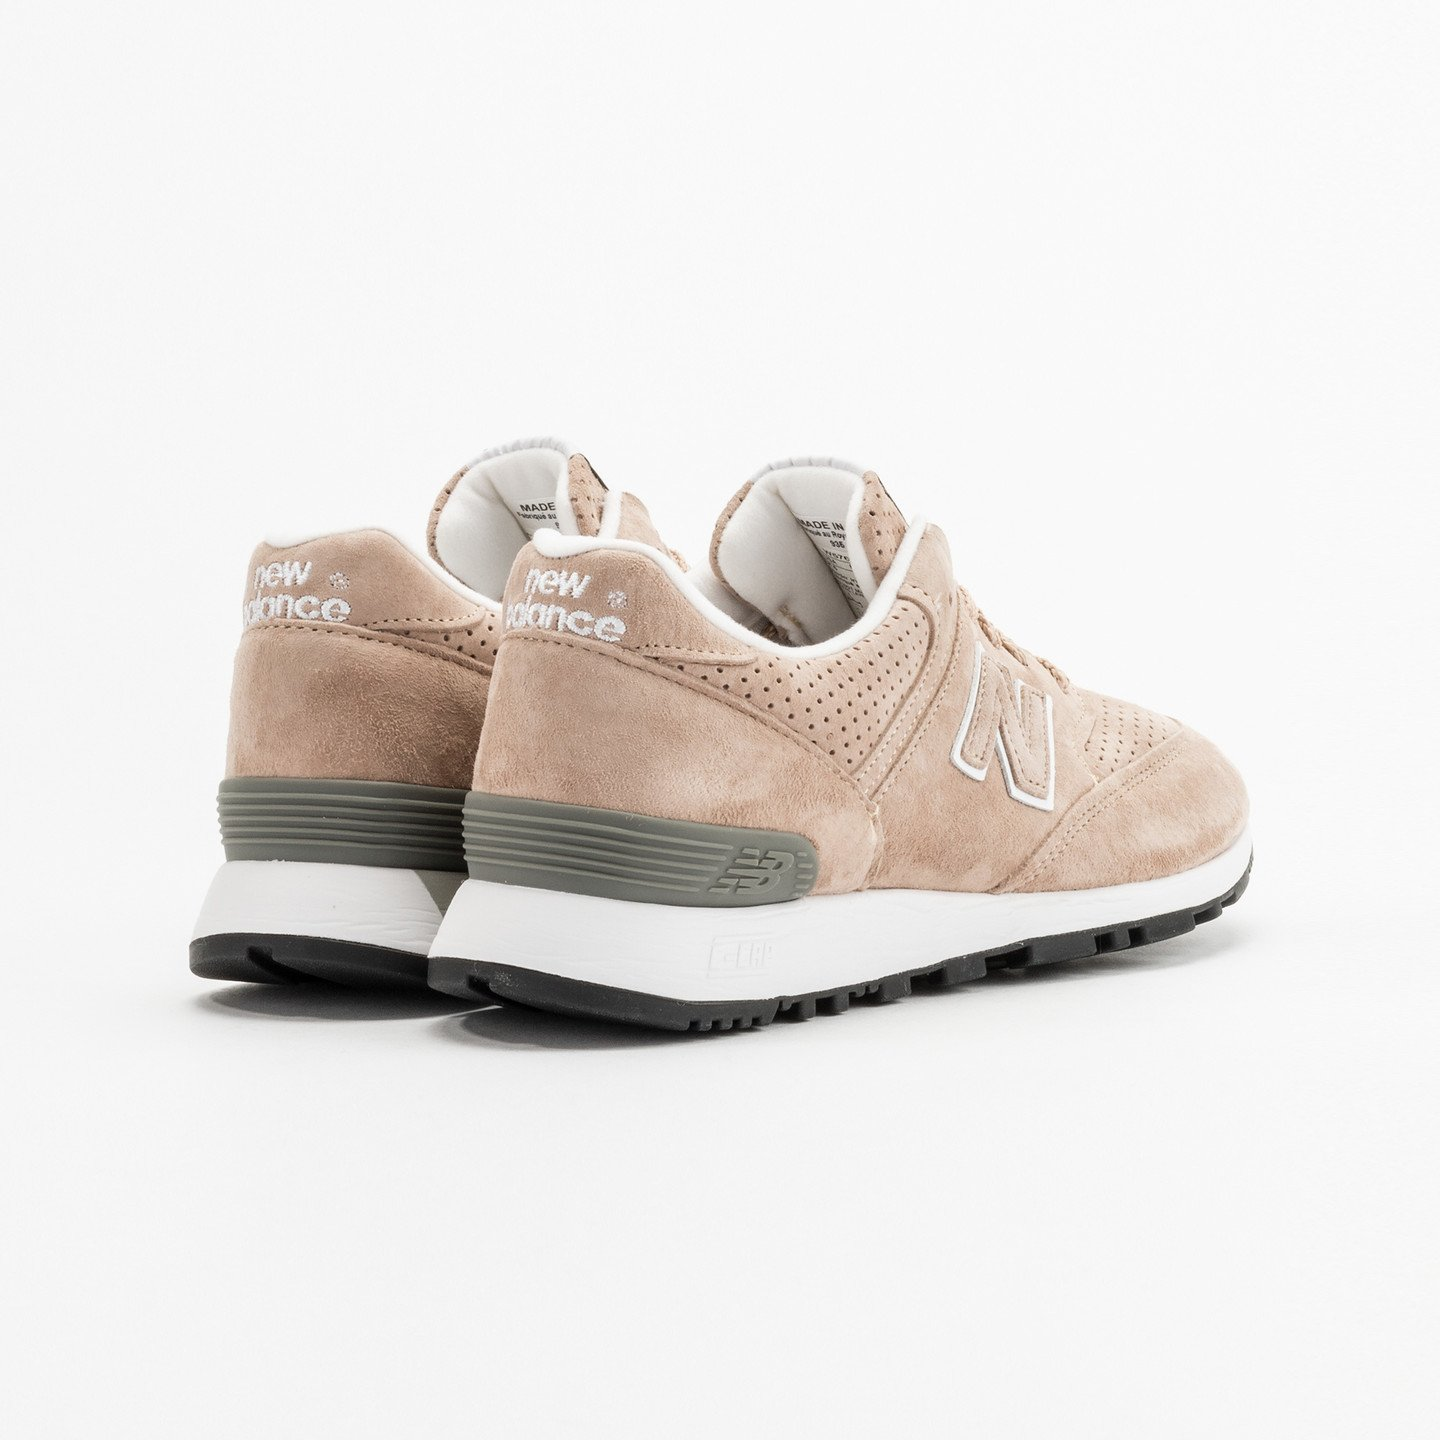 New Balance W576 TTO - Made in UK Light Brown / White W576TTO